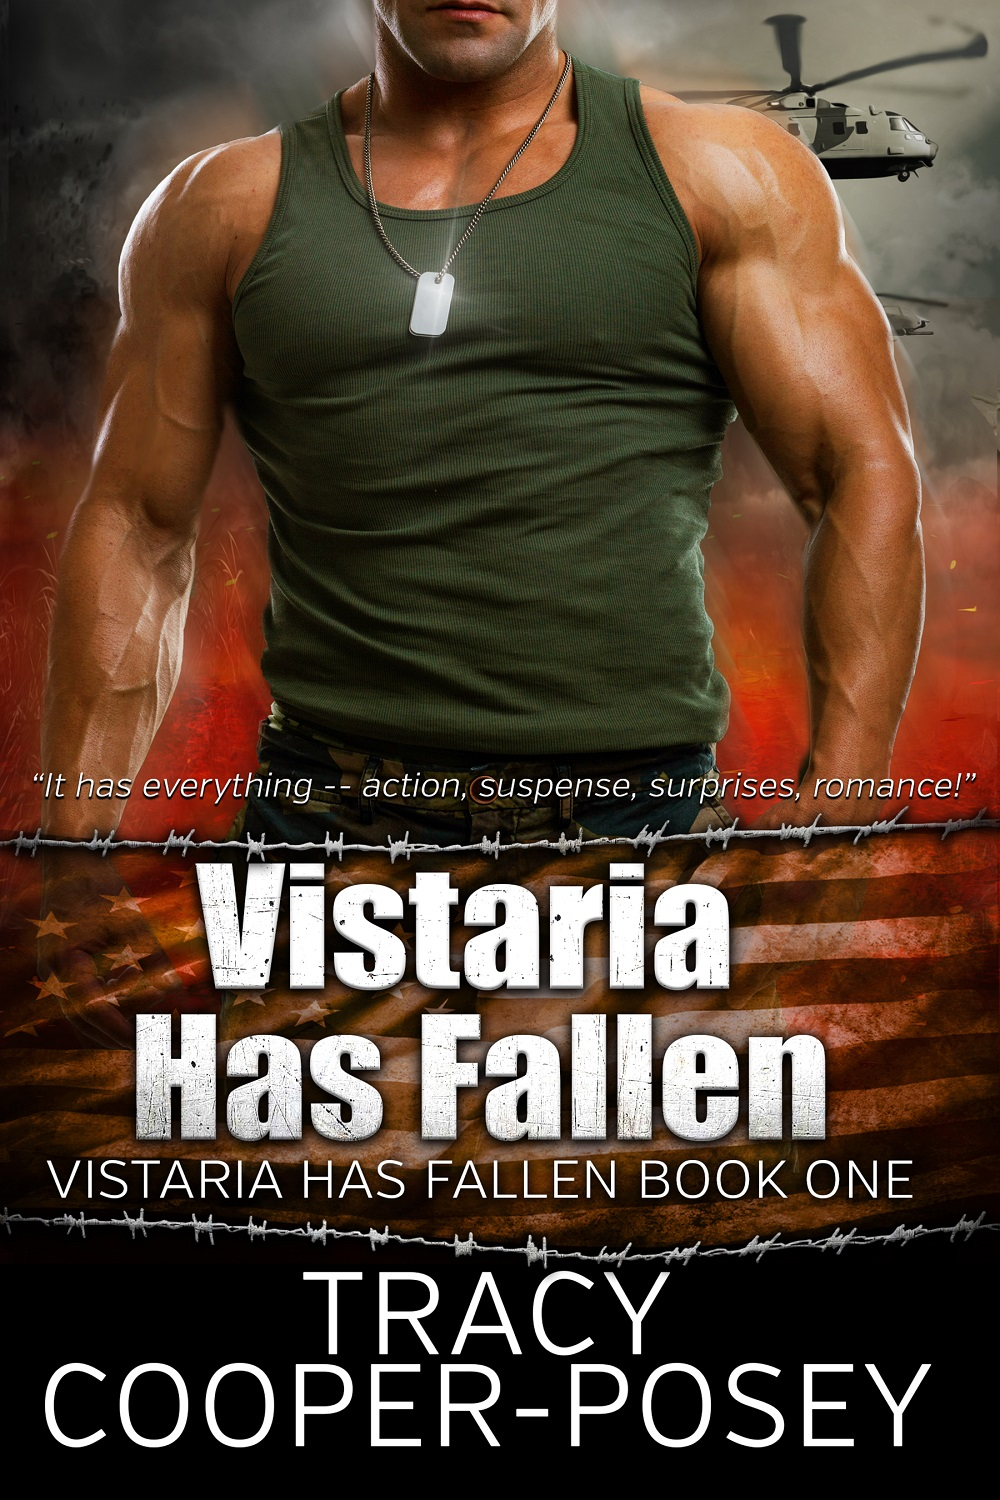 VISTARIA HAS FALLEN Is Free Today…But Only for Kobo Readers (Sort Of).